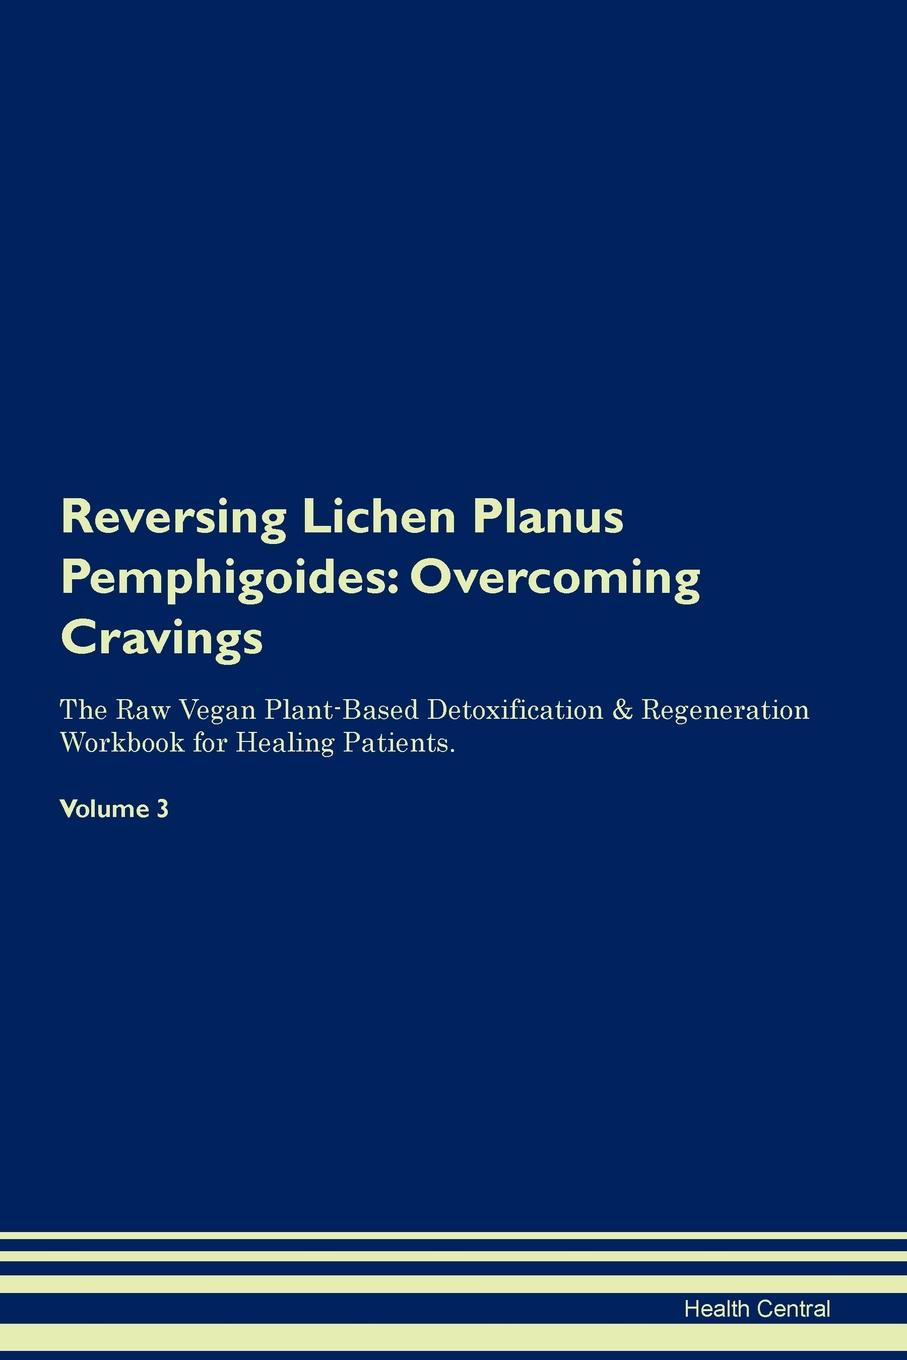 Фото - Health Central Reversing Lichen Planus Pemphigoides. Overcoming Cravings The Raw Vegan Plant-Based Detoxification & Regeneration Workbook for Healing Patients. Volume 3 health central reversing lichen sclerosus overcoming cravings the raw vegan plant based detoxification regeneration workbook for healing patients volume 3